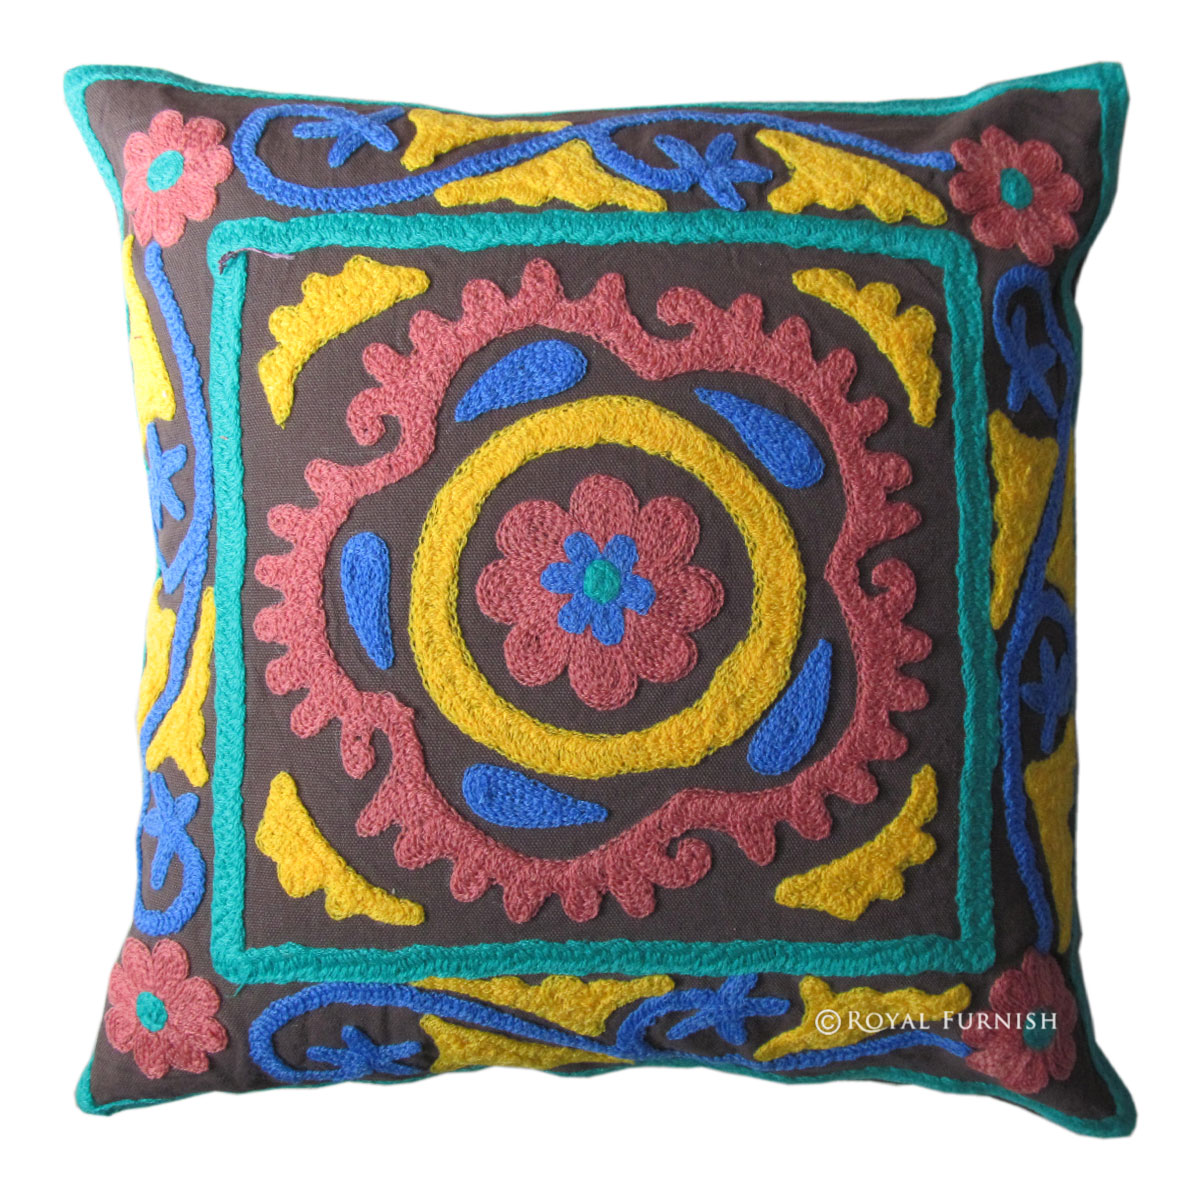 Embroidered Throw Pillow Covers : 16x16 Decorative Suzani Embroidered Throw Accent Floral Pillow Cover - RoyalFurnish.com